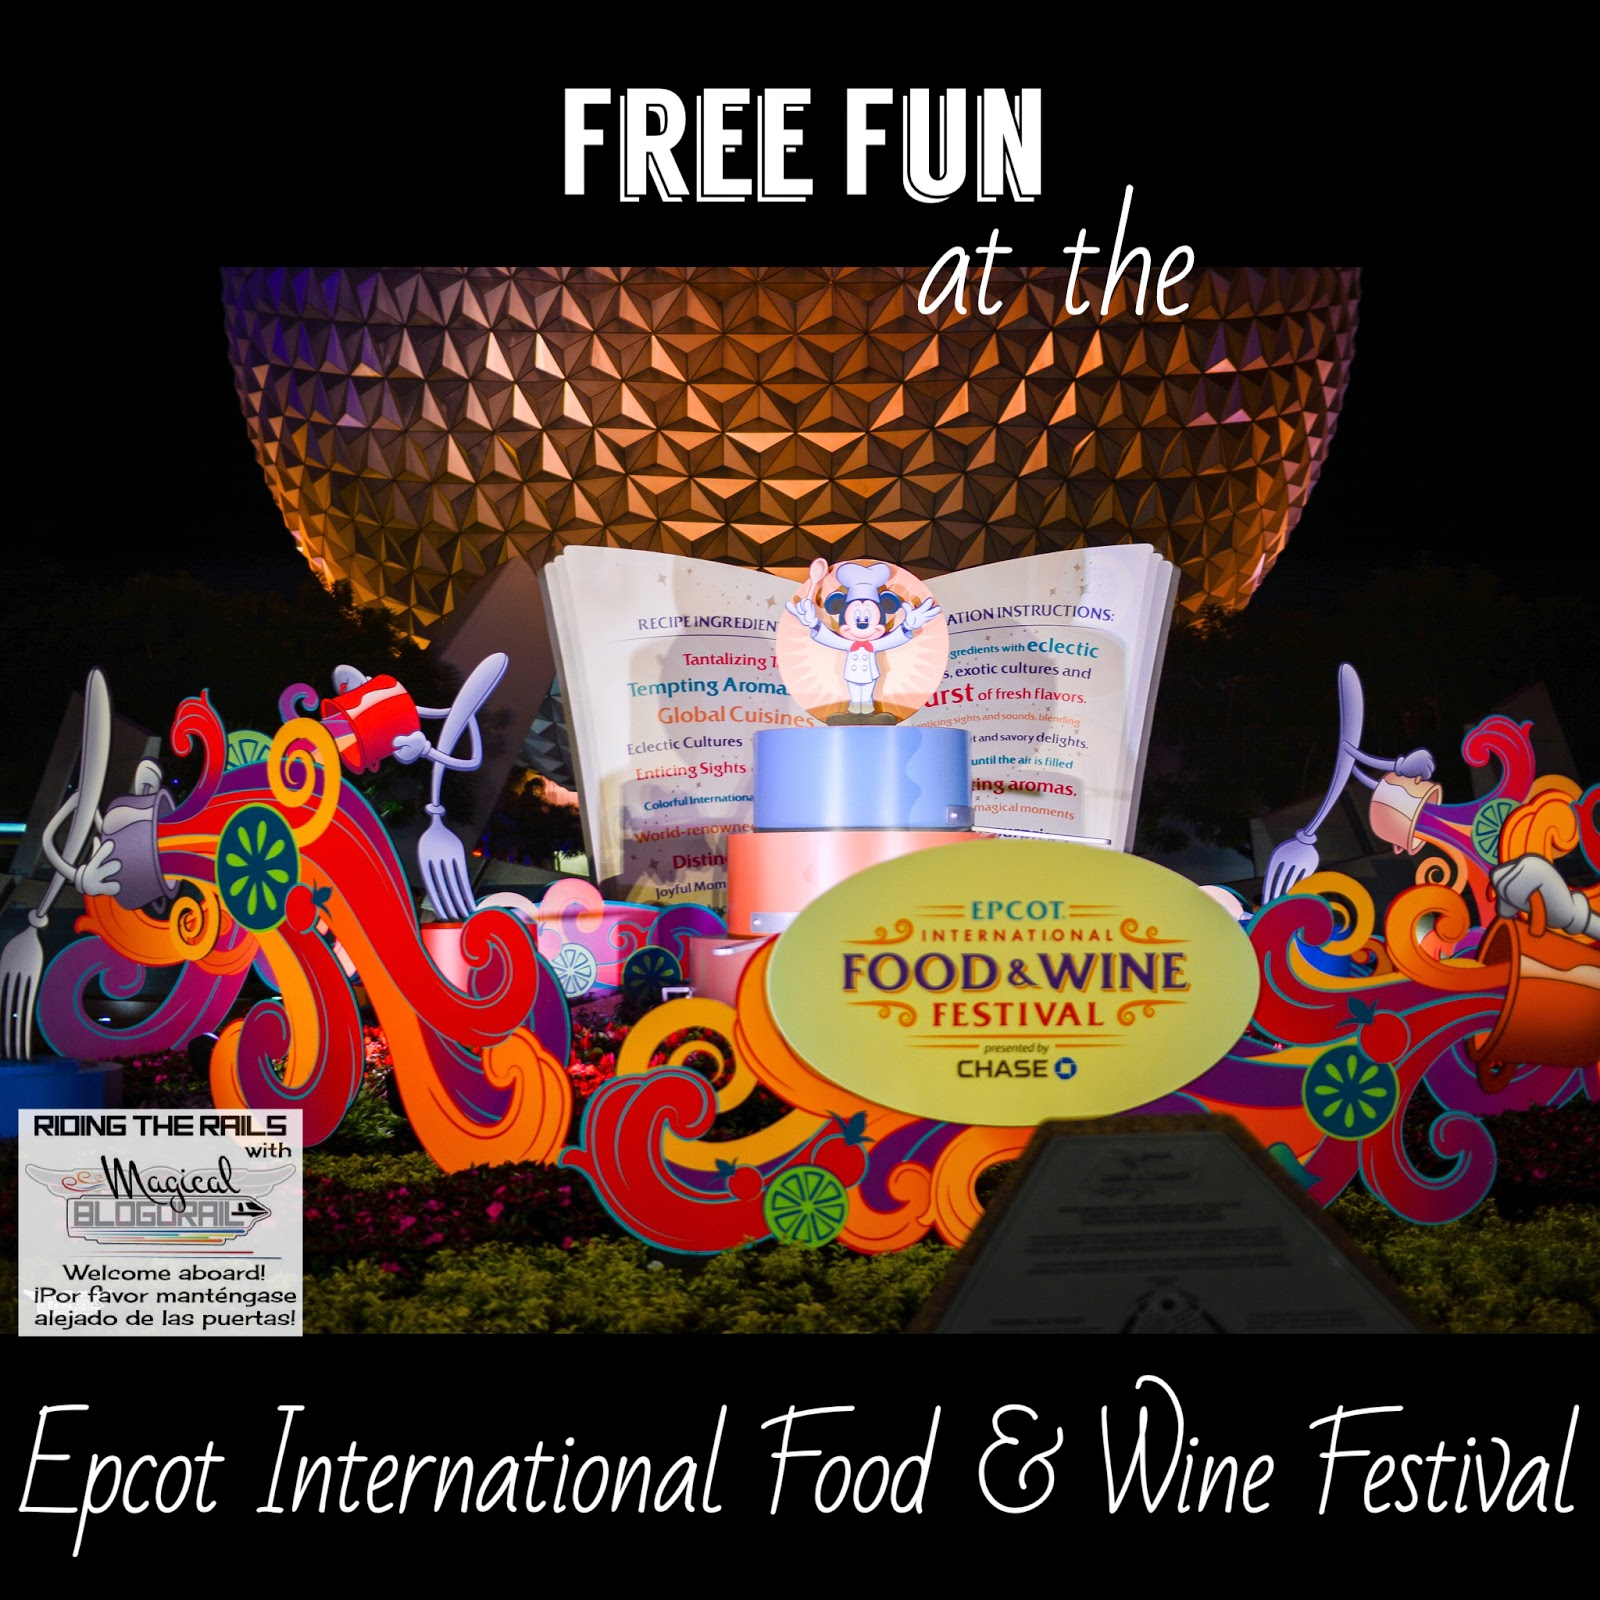 Free Fun at the Epcot International Food & Wine Festival